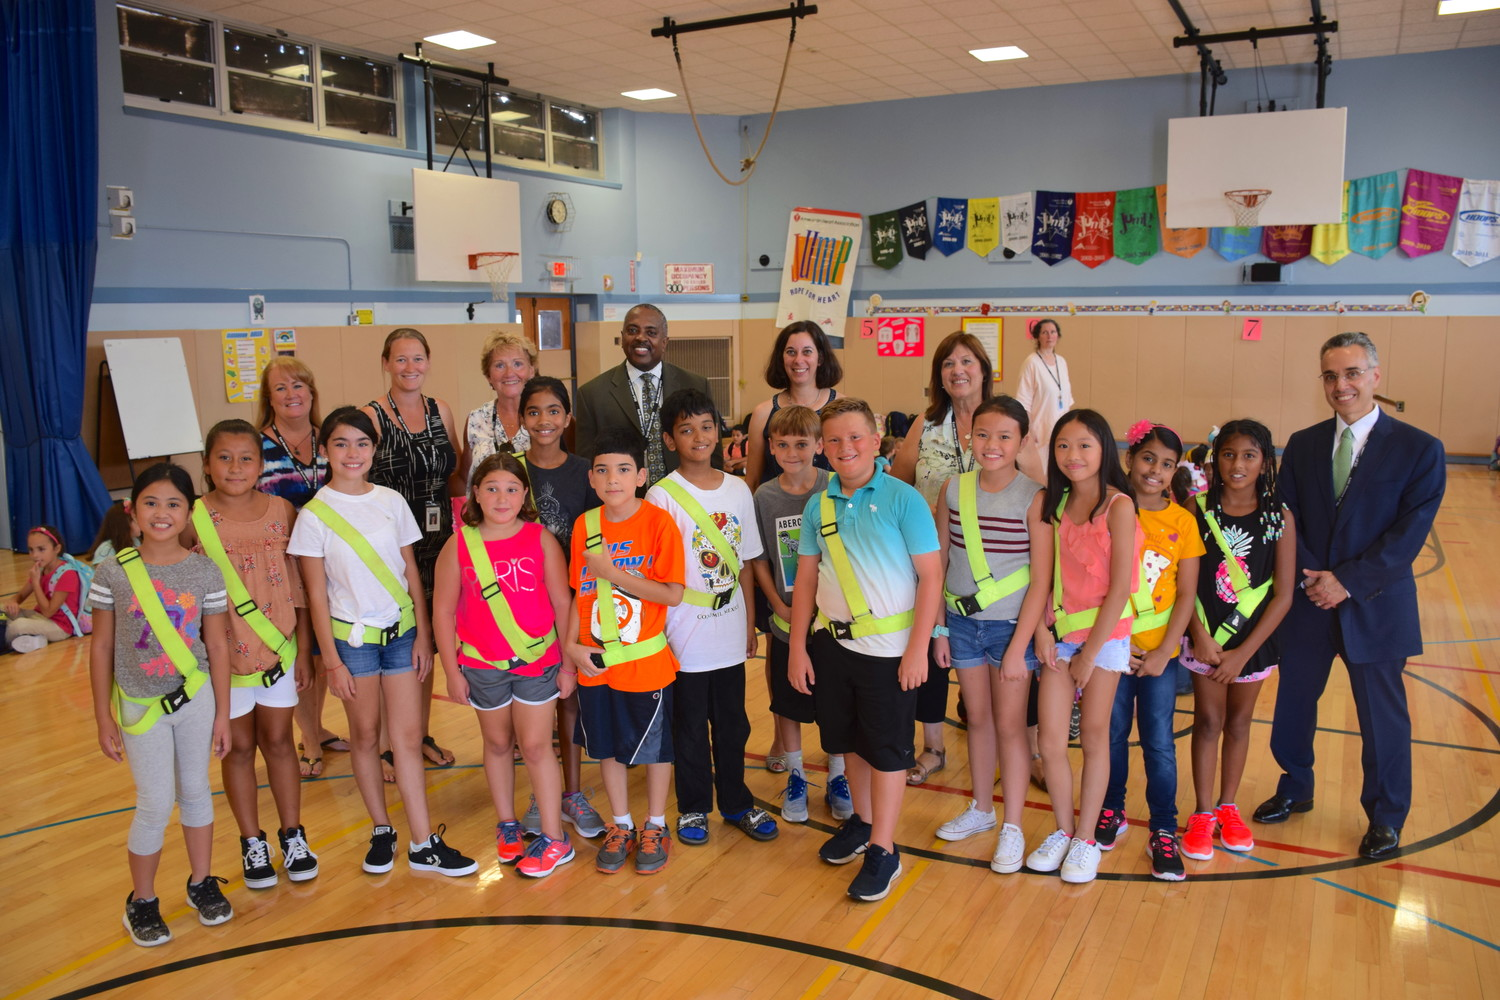 East Meadow Superintendent Dr. Kenneth Card Jr.and Parkway Elementary School Principal Jamie Mack joined to welcome students back on Sept. 5.